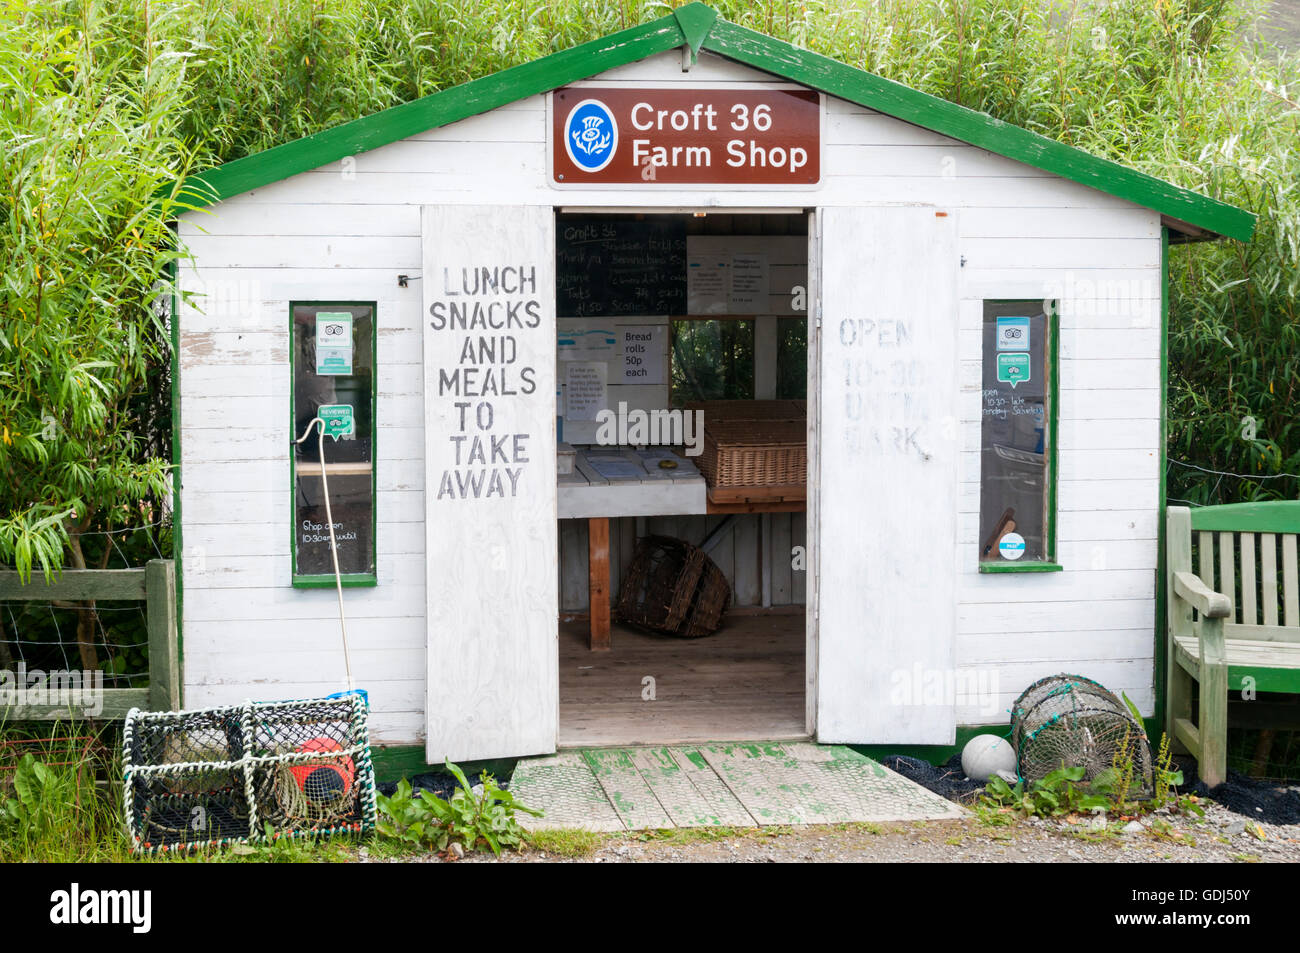 The Croft 36 Farm Shop at Northton on the Isle of Harris, Outer Hebrides. Stock Photo